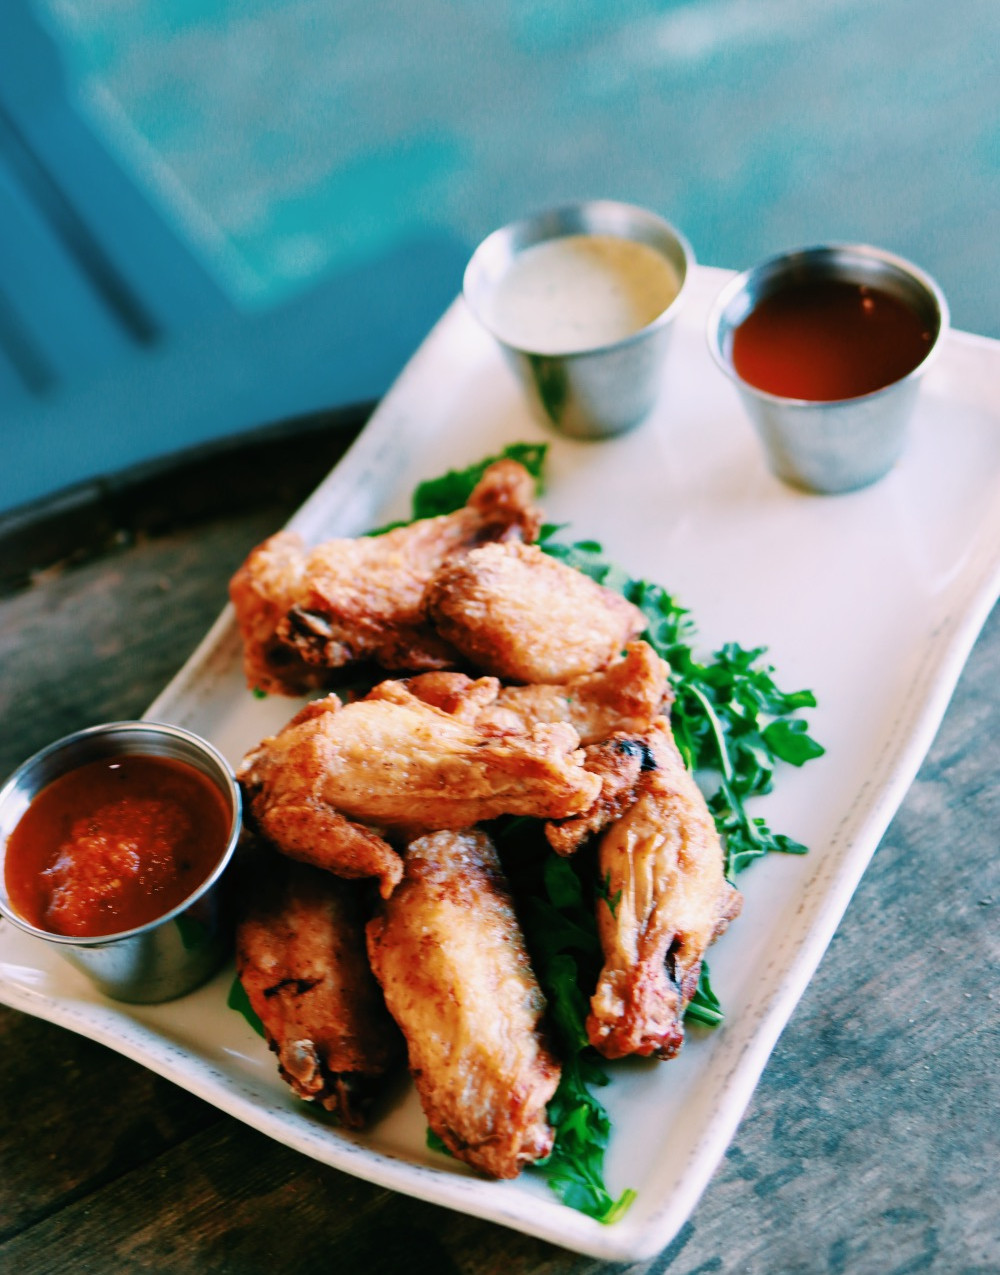 chicken wings with house sauces